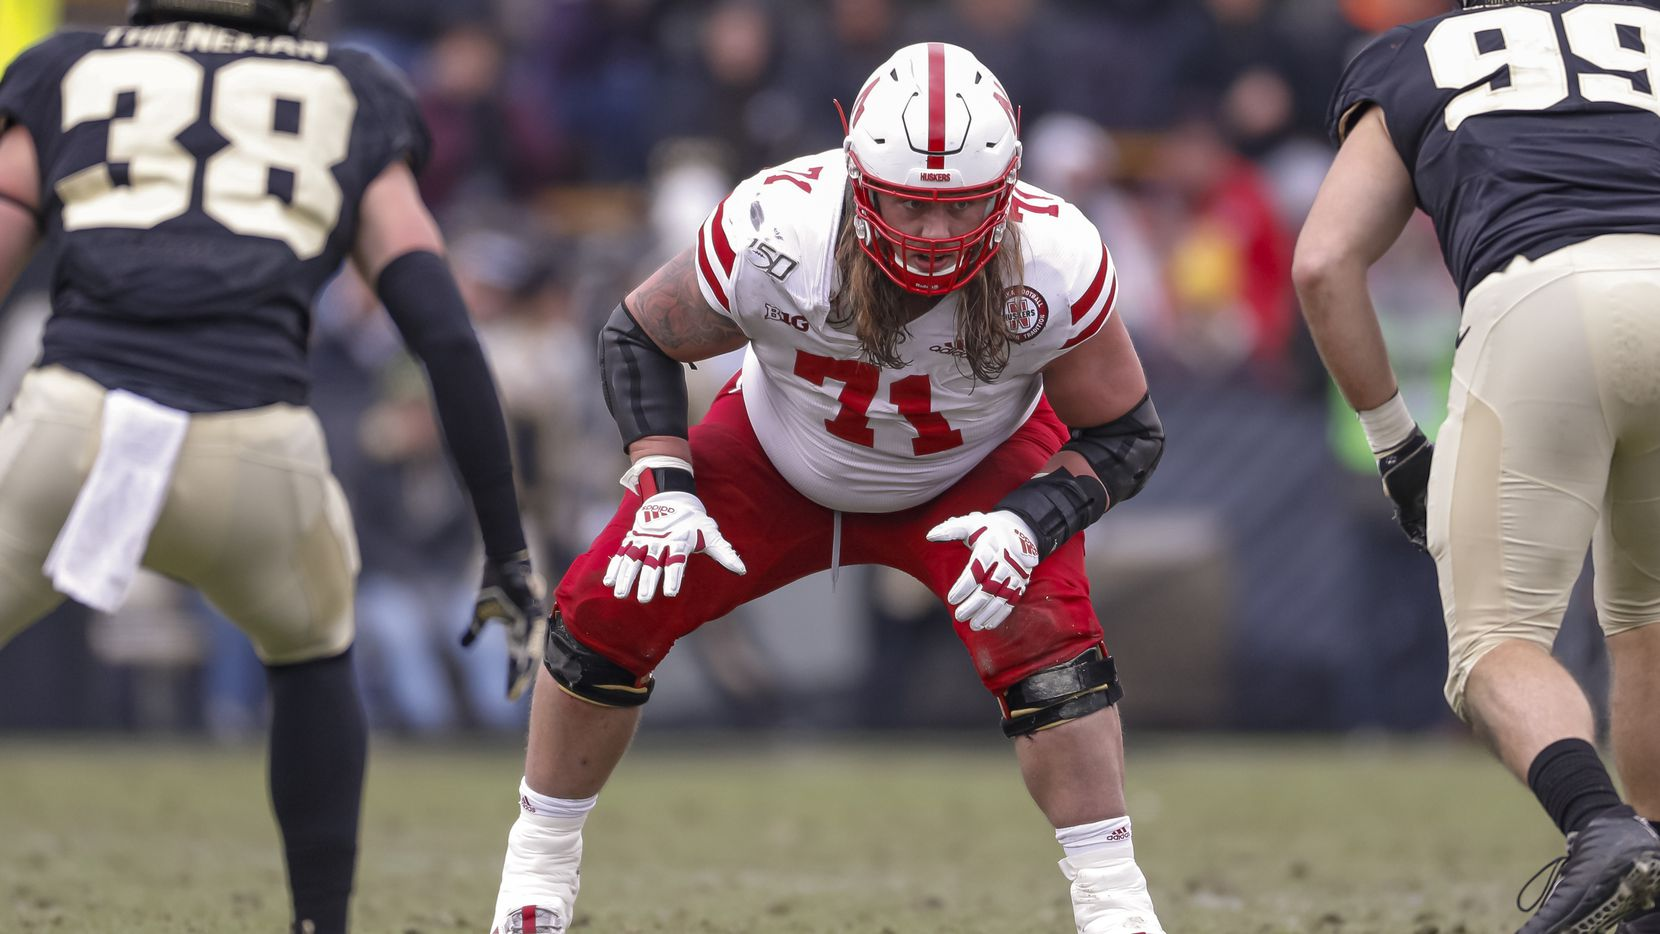 Matt Farniok #71 of the Nebraska Cornhuskers is seen during the game against the Purdue Boilermakers at Ross-Ade Stadium on November 2, 2019 in West Lafayette, Indiana.